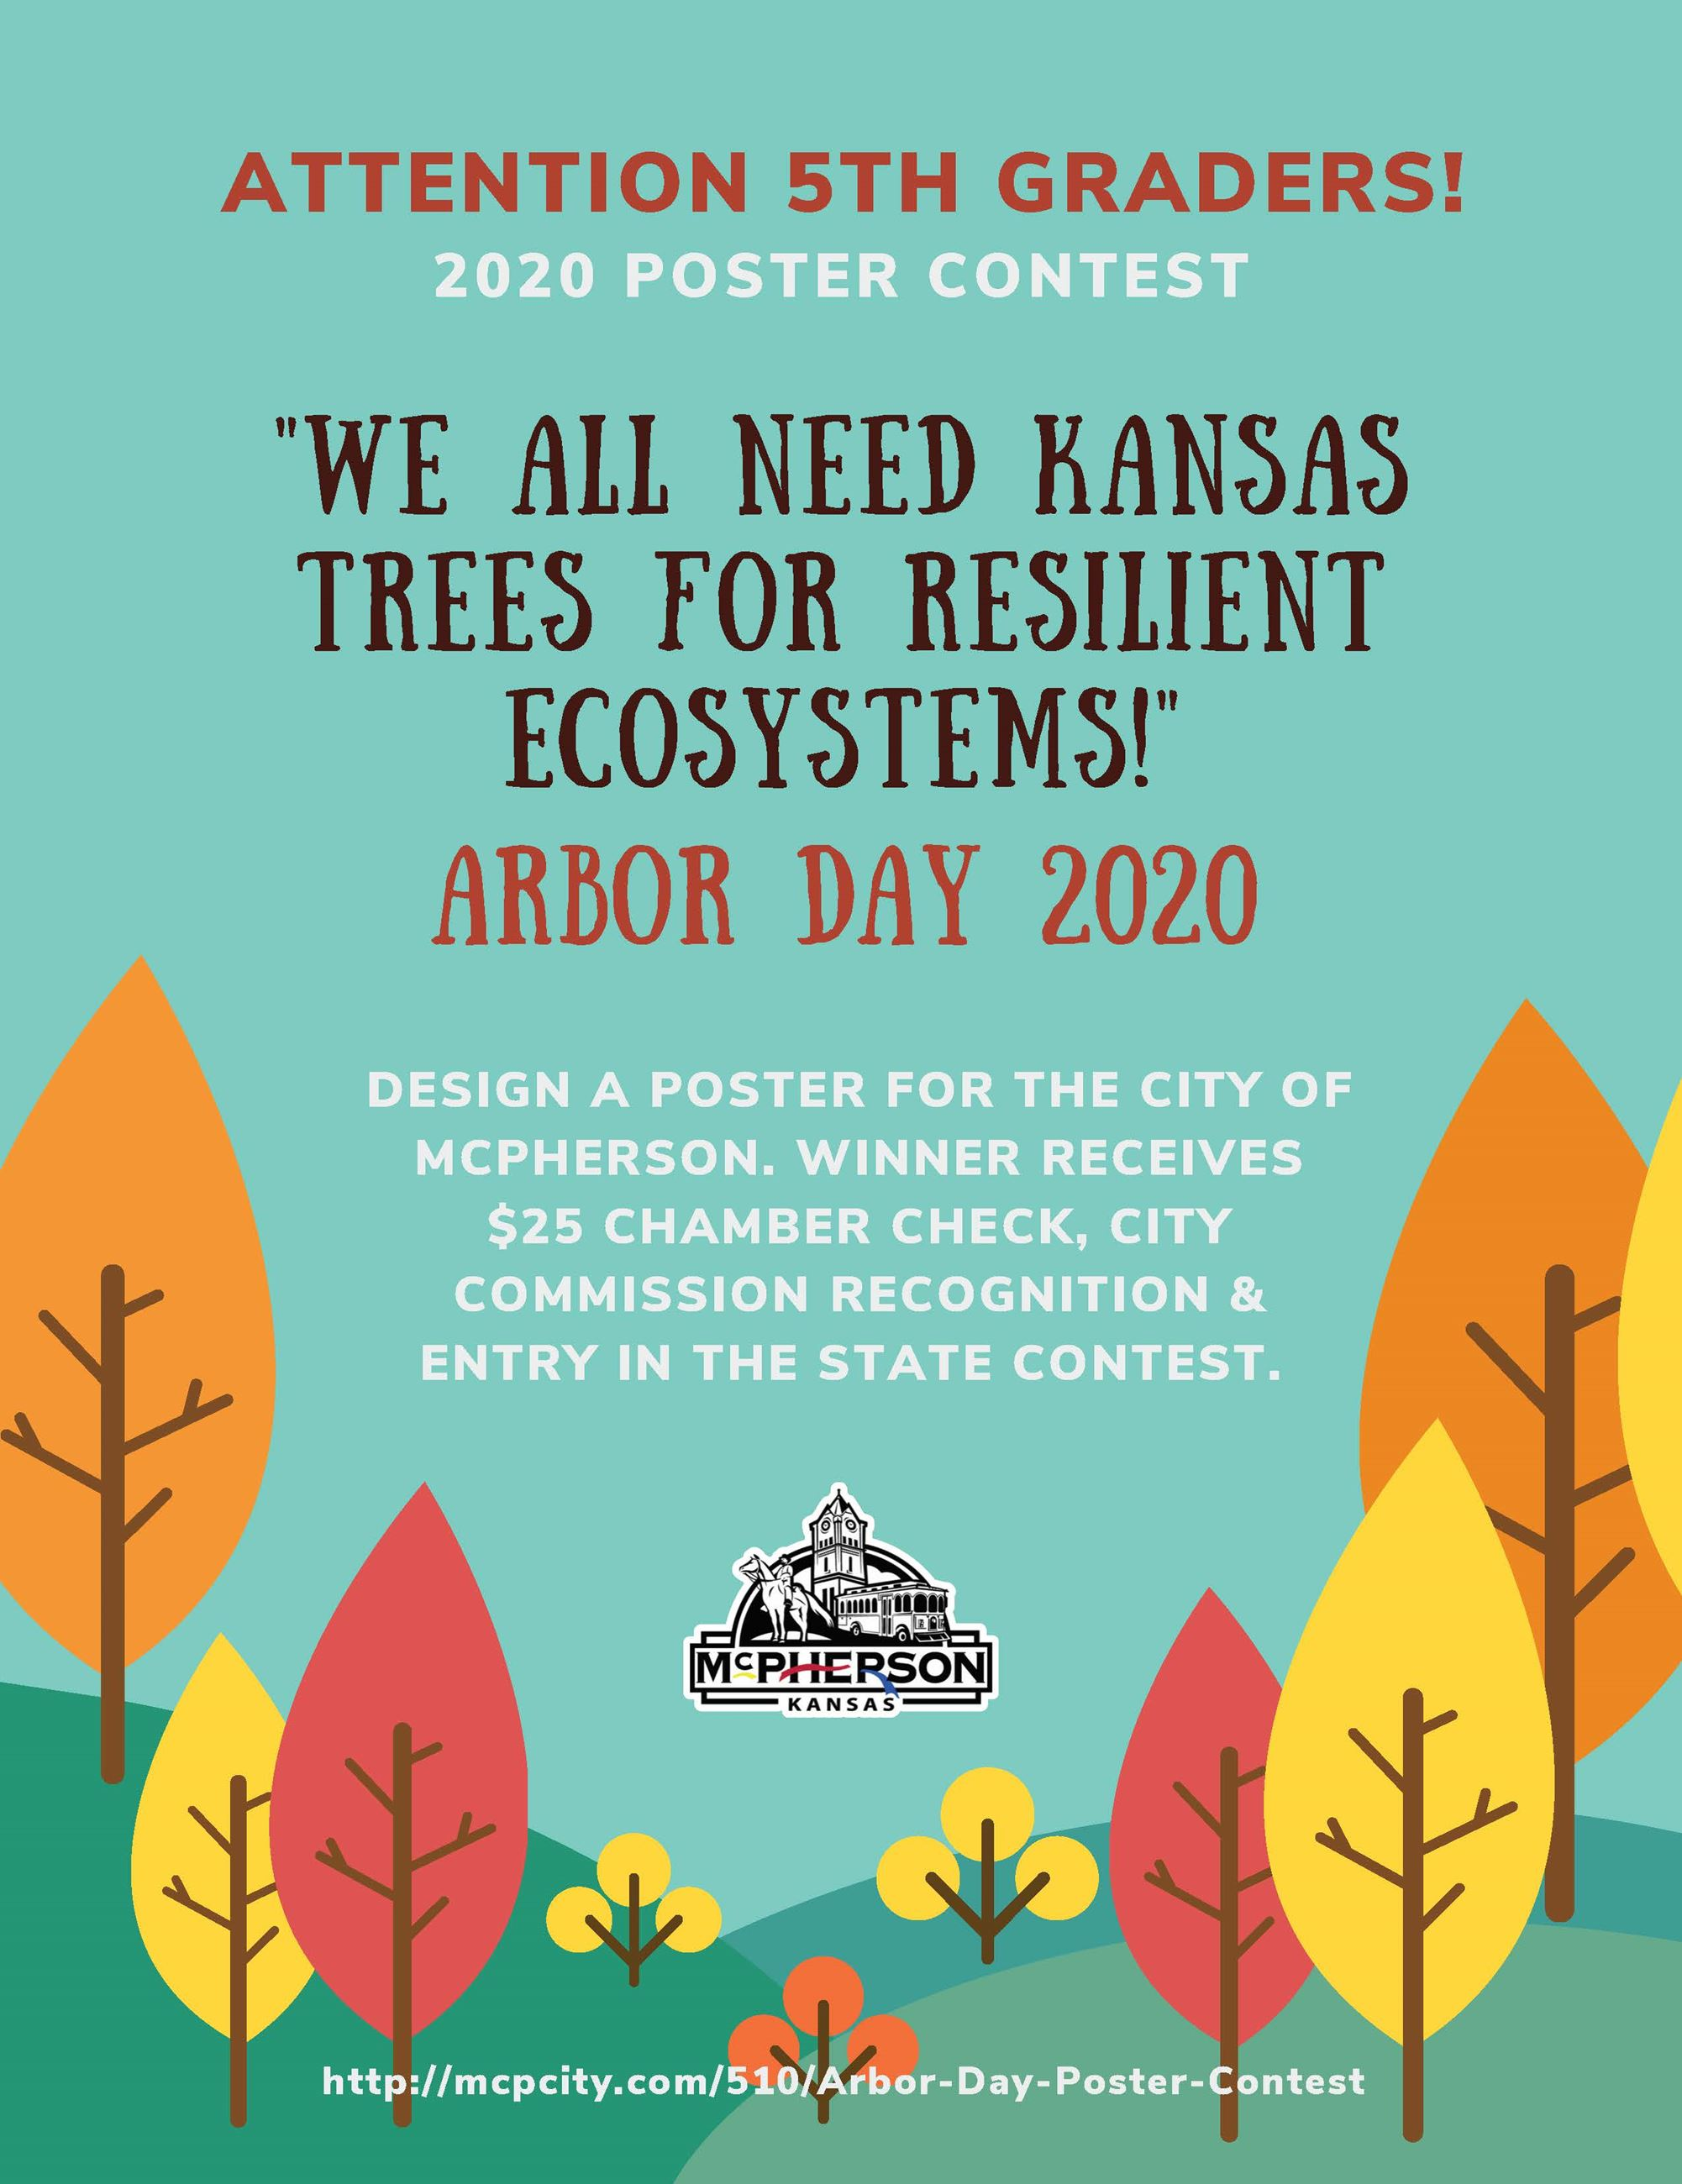 Colorful poster with fall trees promoting the annual Arbor Day Poster Contest sponsored by the City